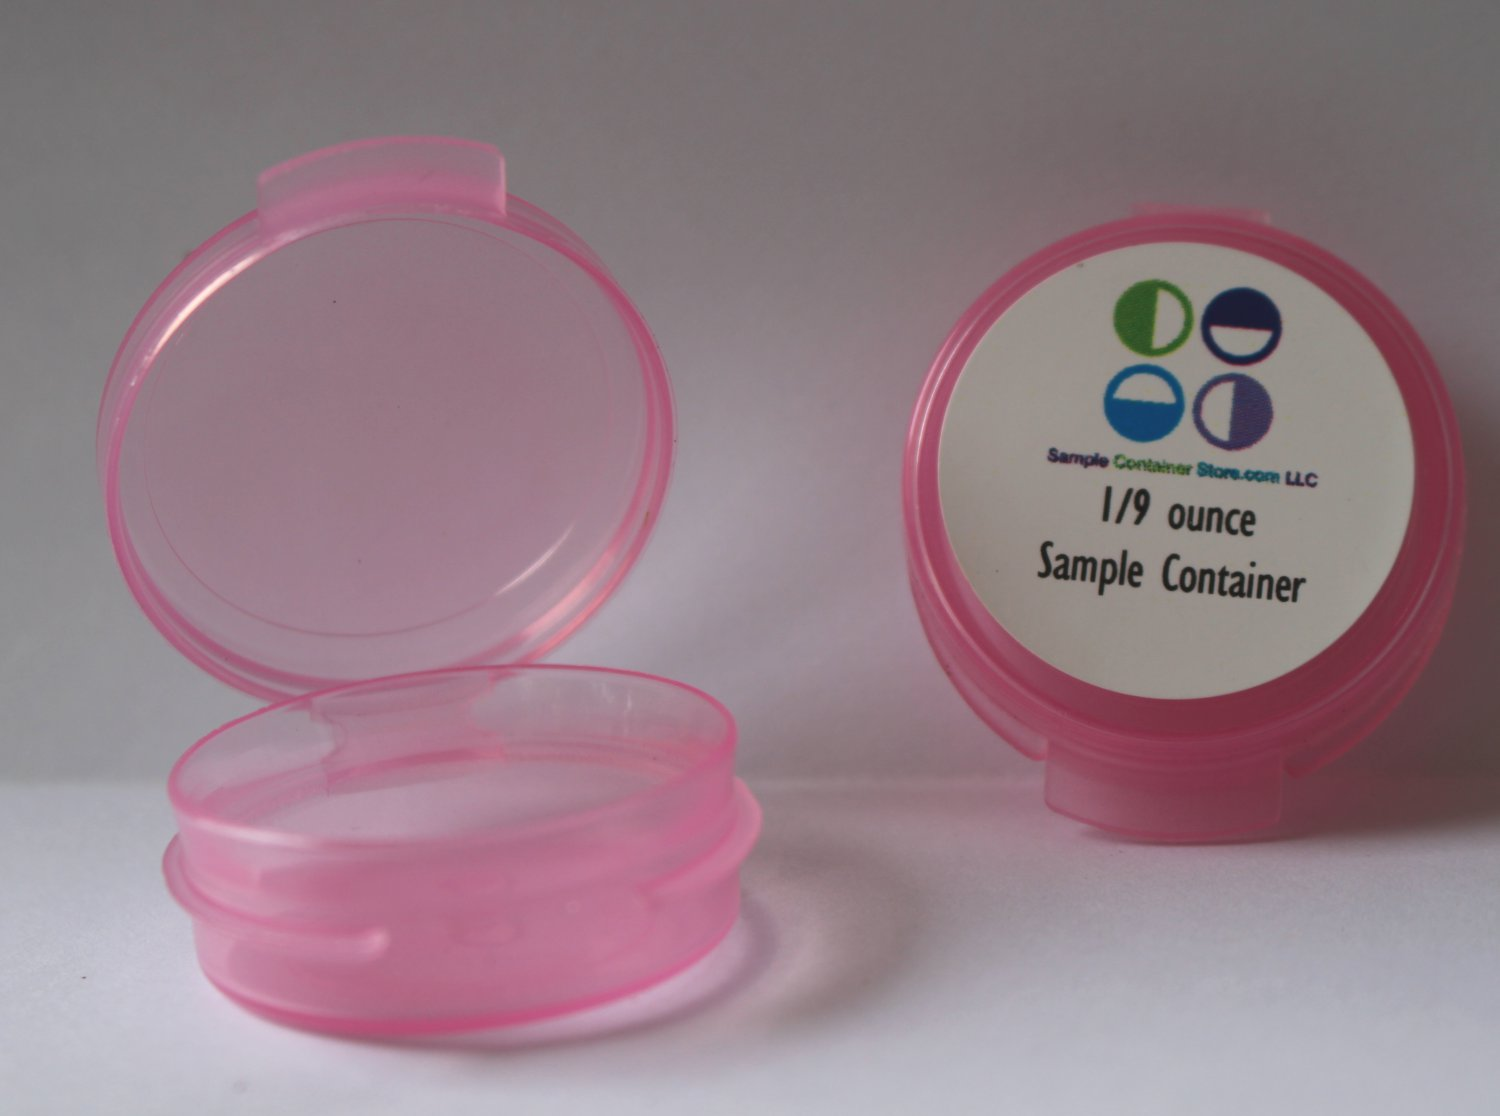 (150) 1/9 Ounce Sample Container Pink Hinged Lid